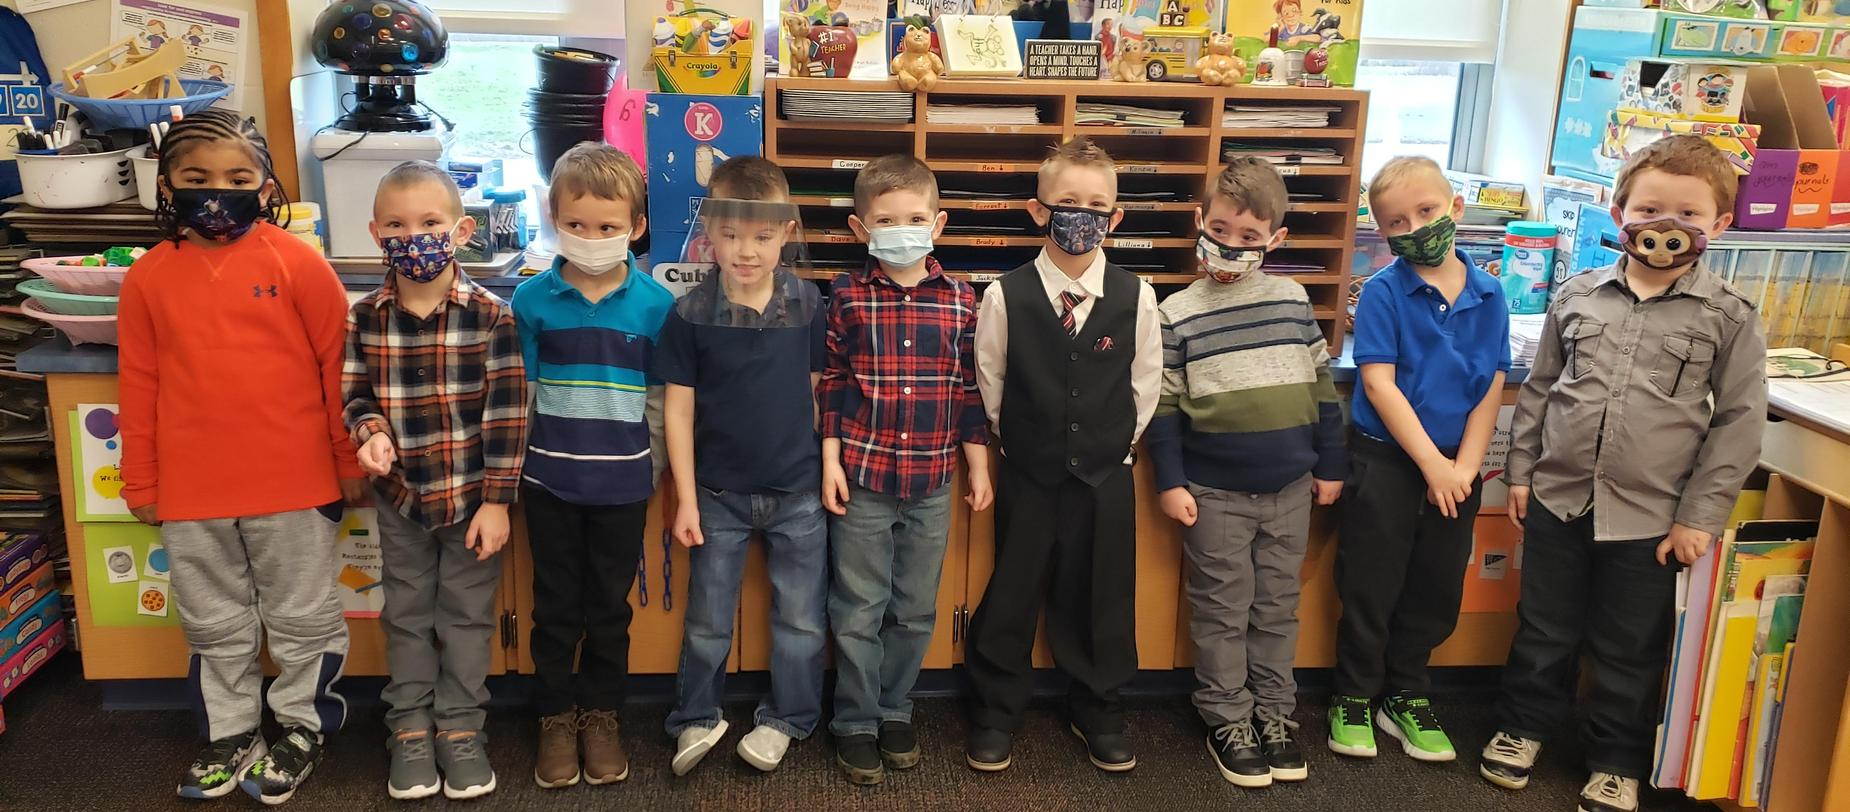 students dressed up for picture day